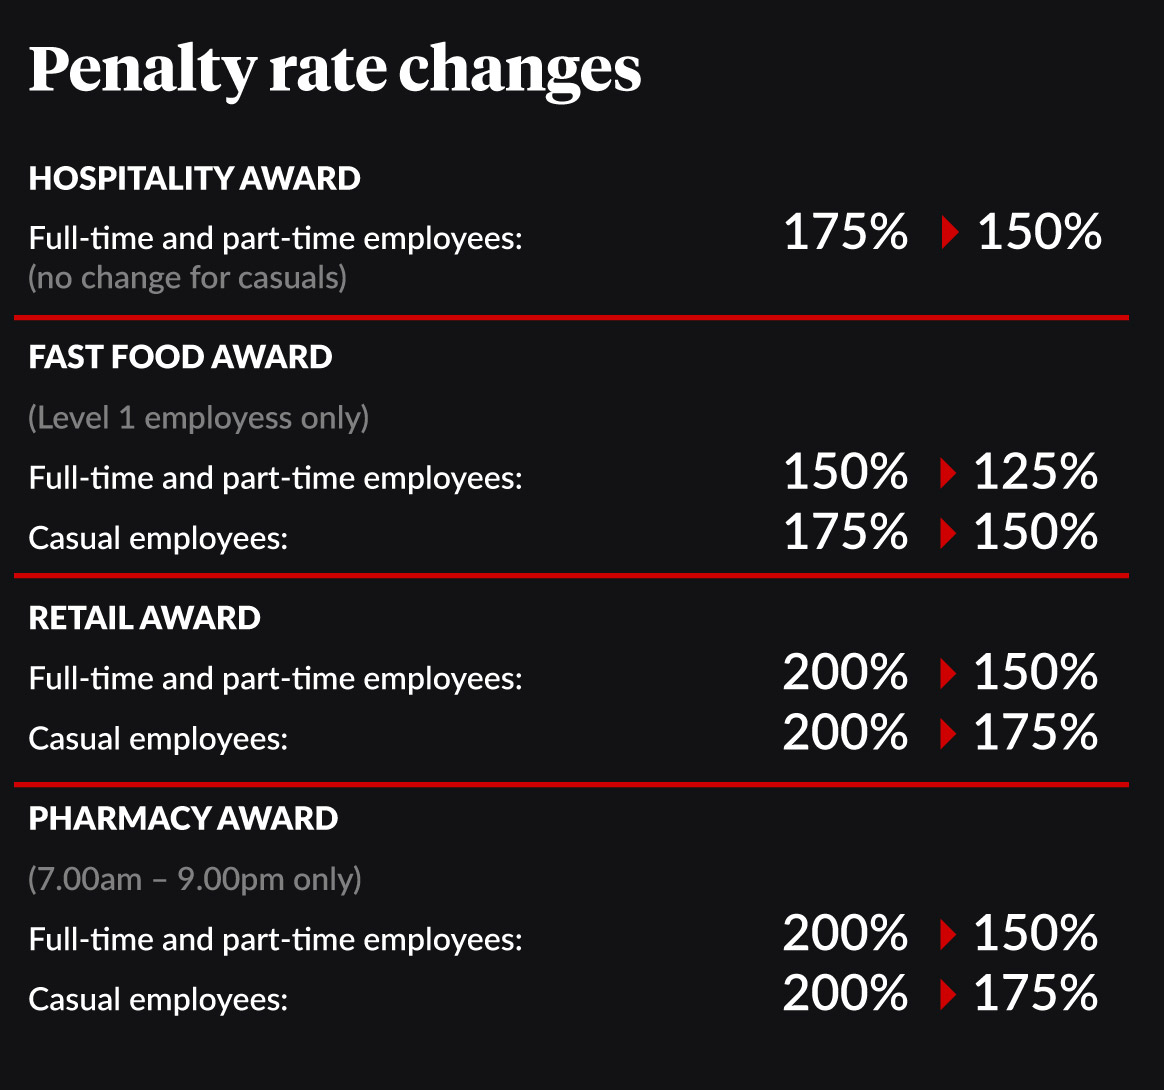 0223-penalty-rates